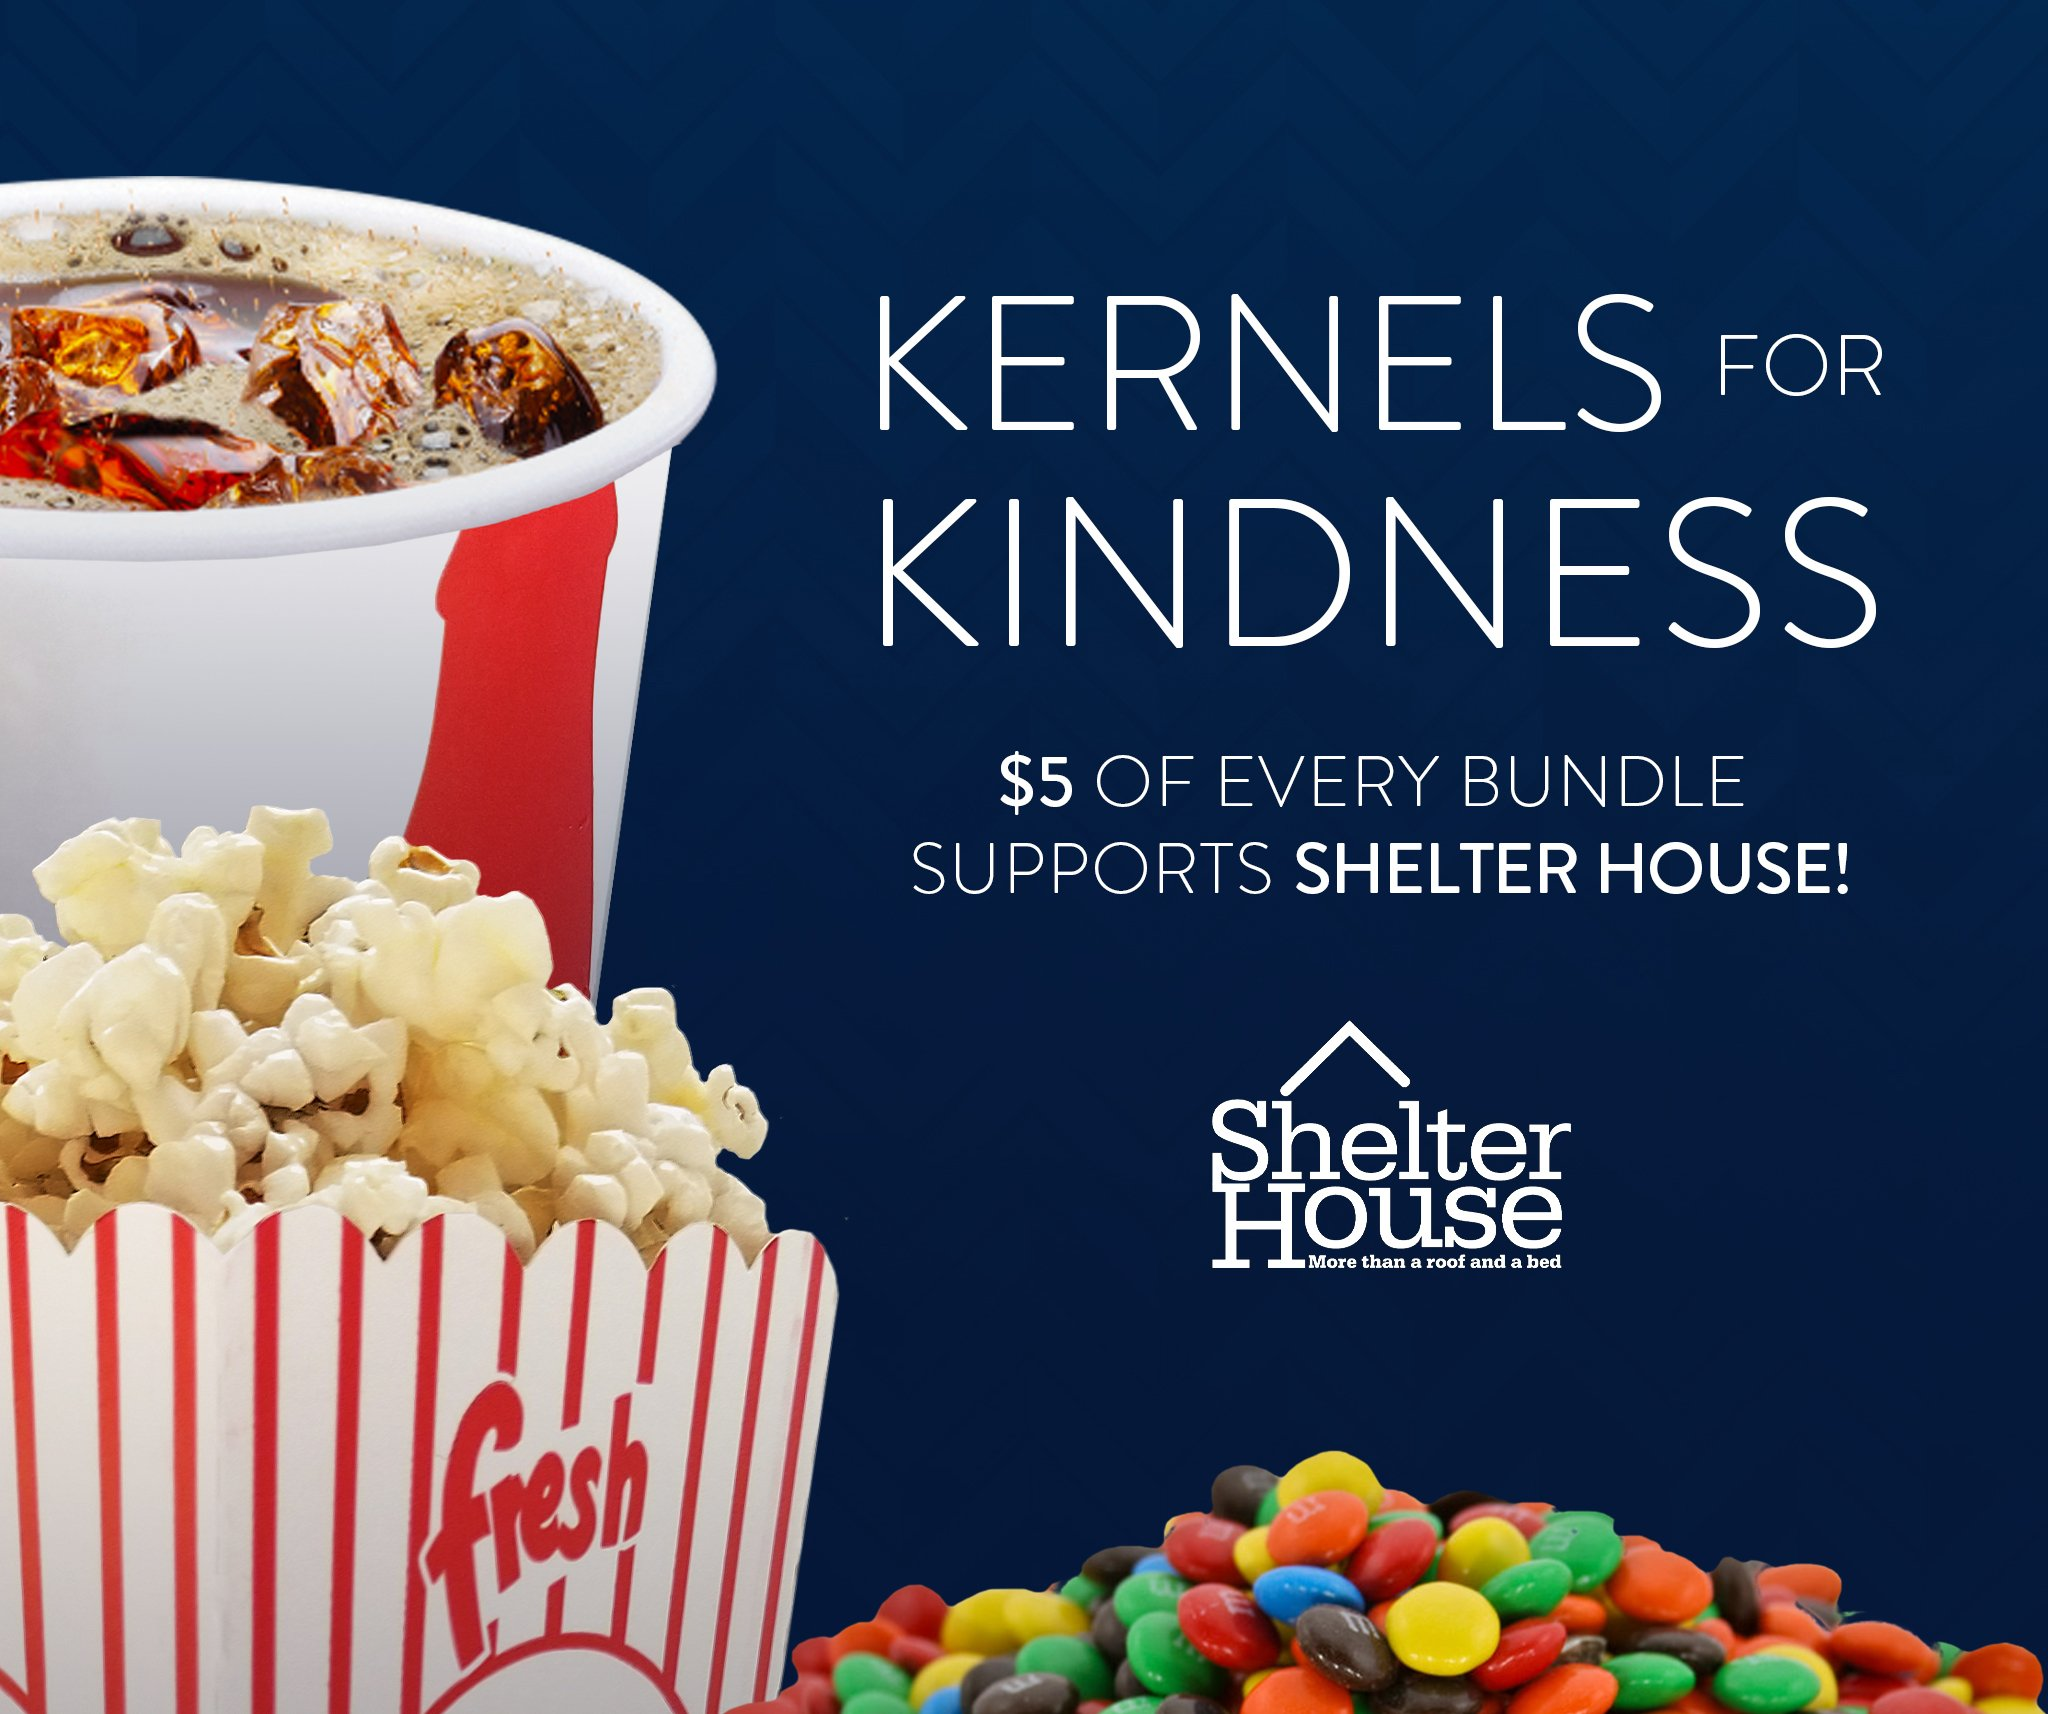 Shelter House Kernels for Kindness